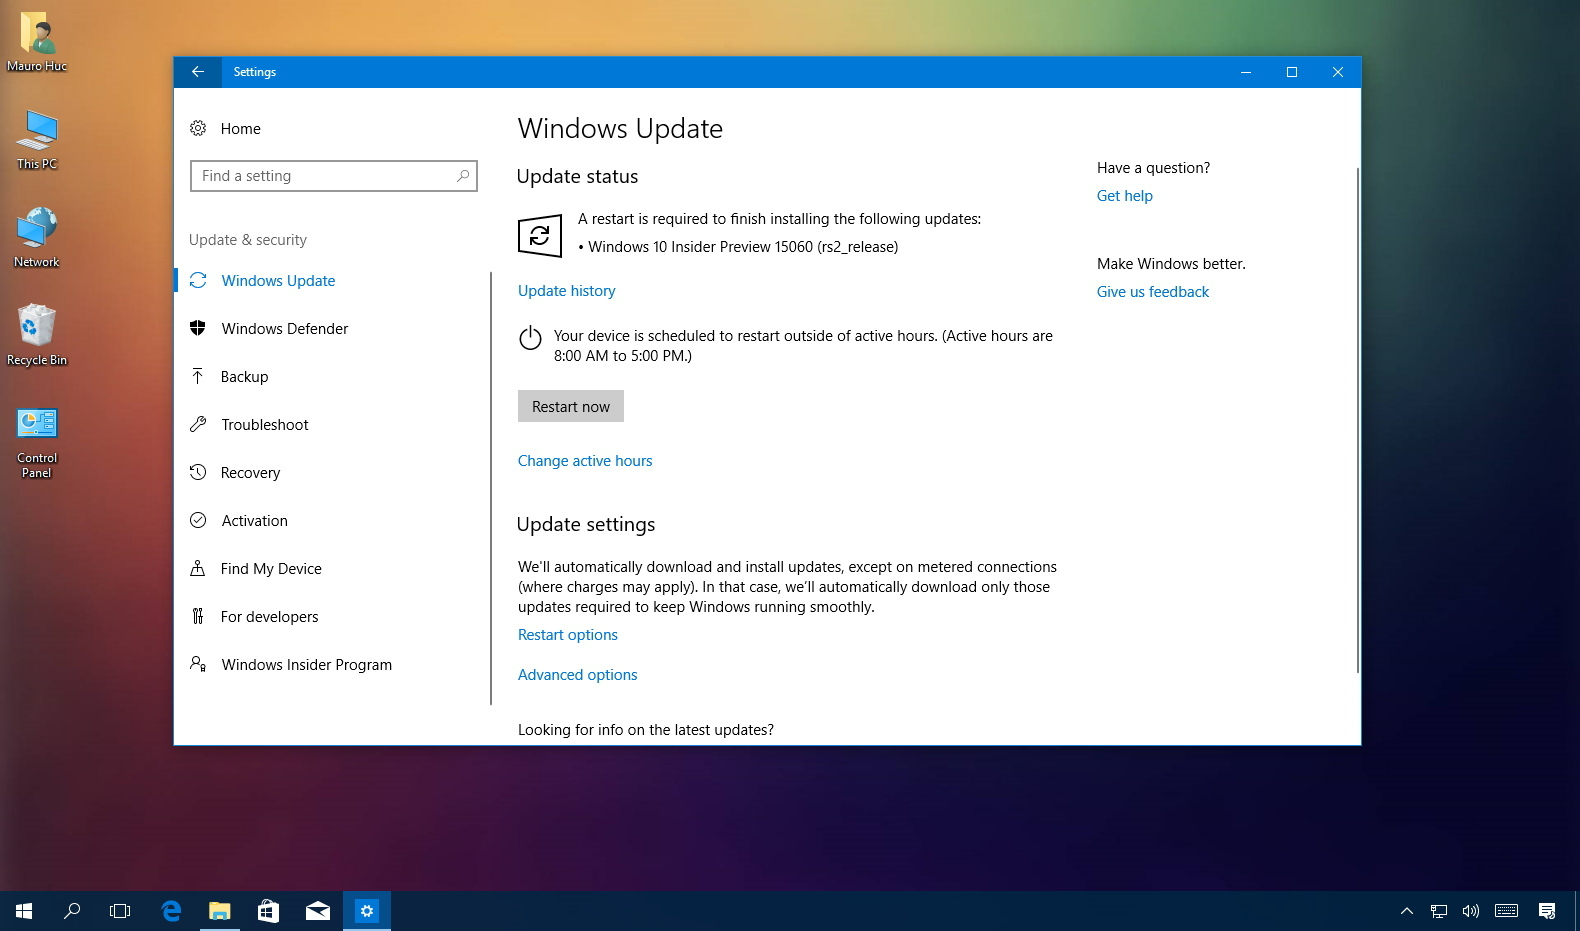 Windows 10 build 15060